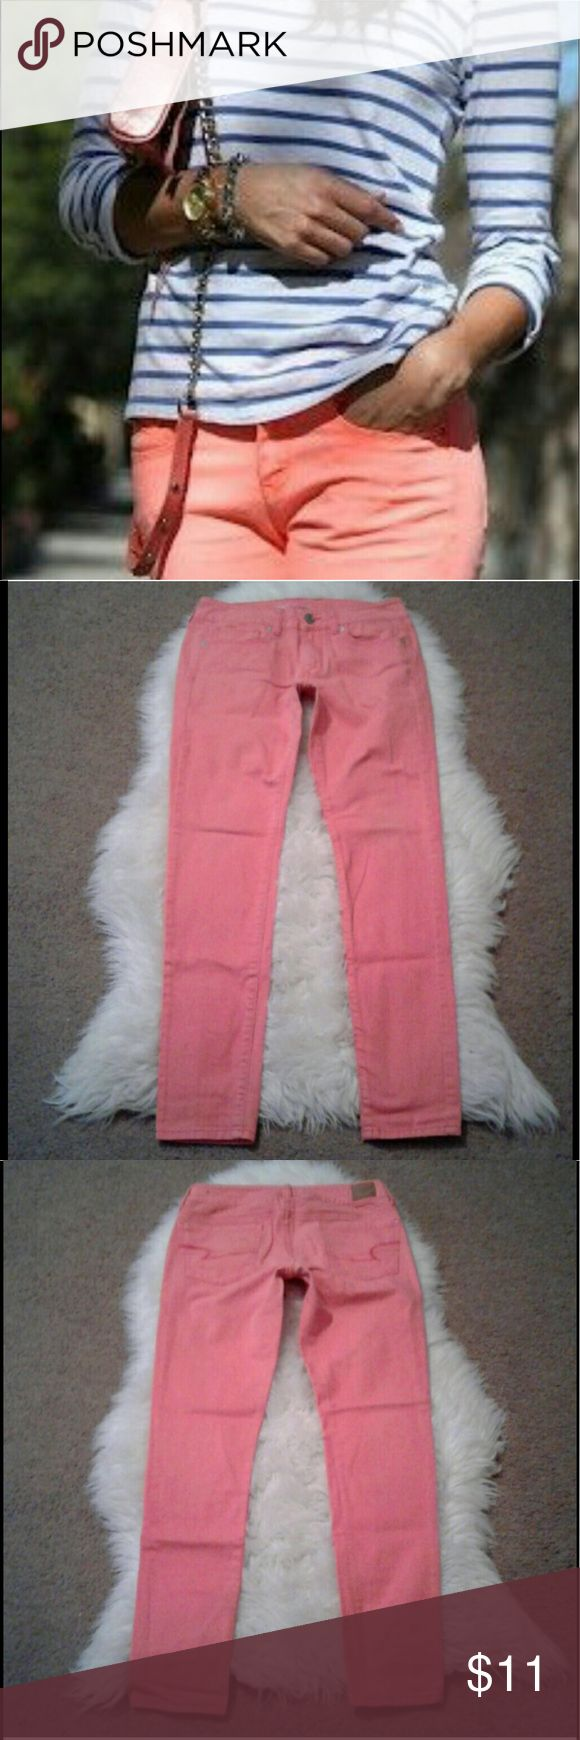 """Coral Skinny jeans 6 AE Outfitters coral skinny jean. EUC Waist: 15"""" Inseam: 31"""" Front rise: 7"""" Perfect for a spring look 🌺 American Eagle Outfitters Pants Skinny"""